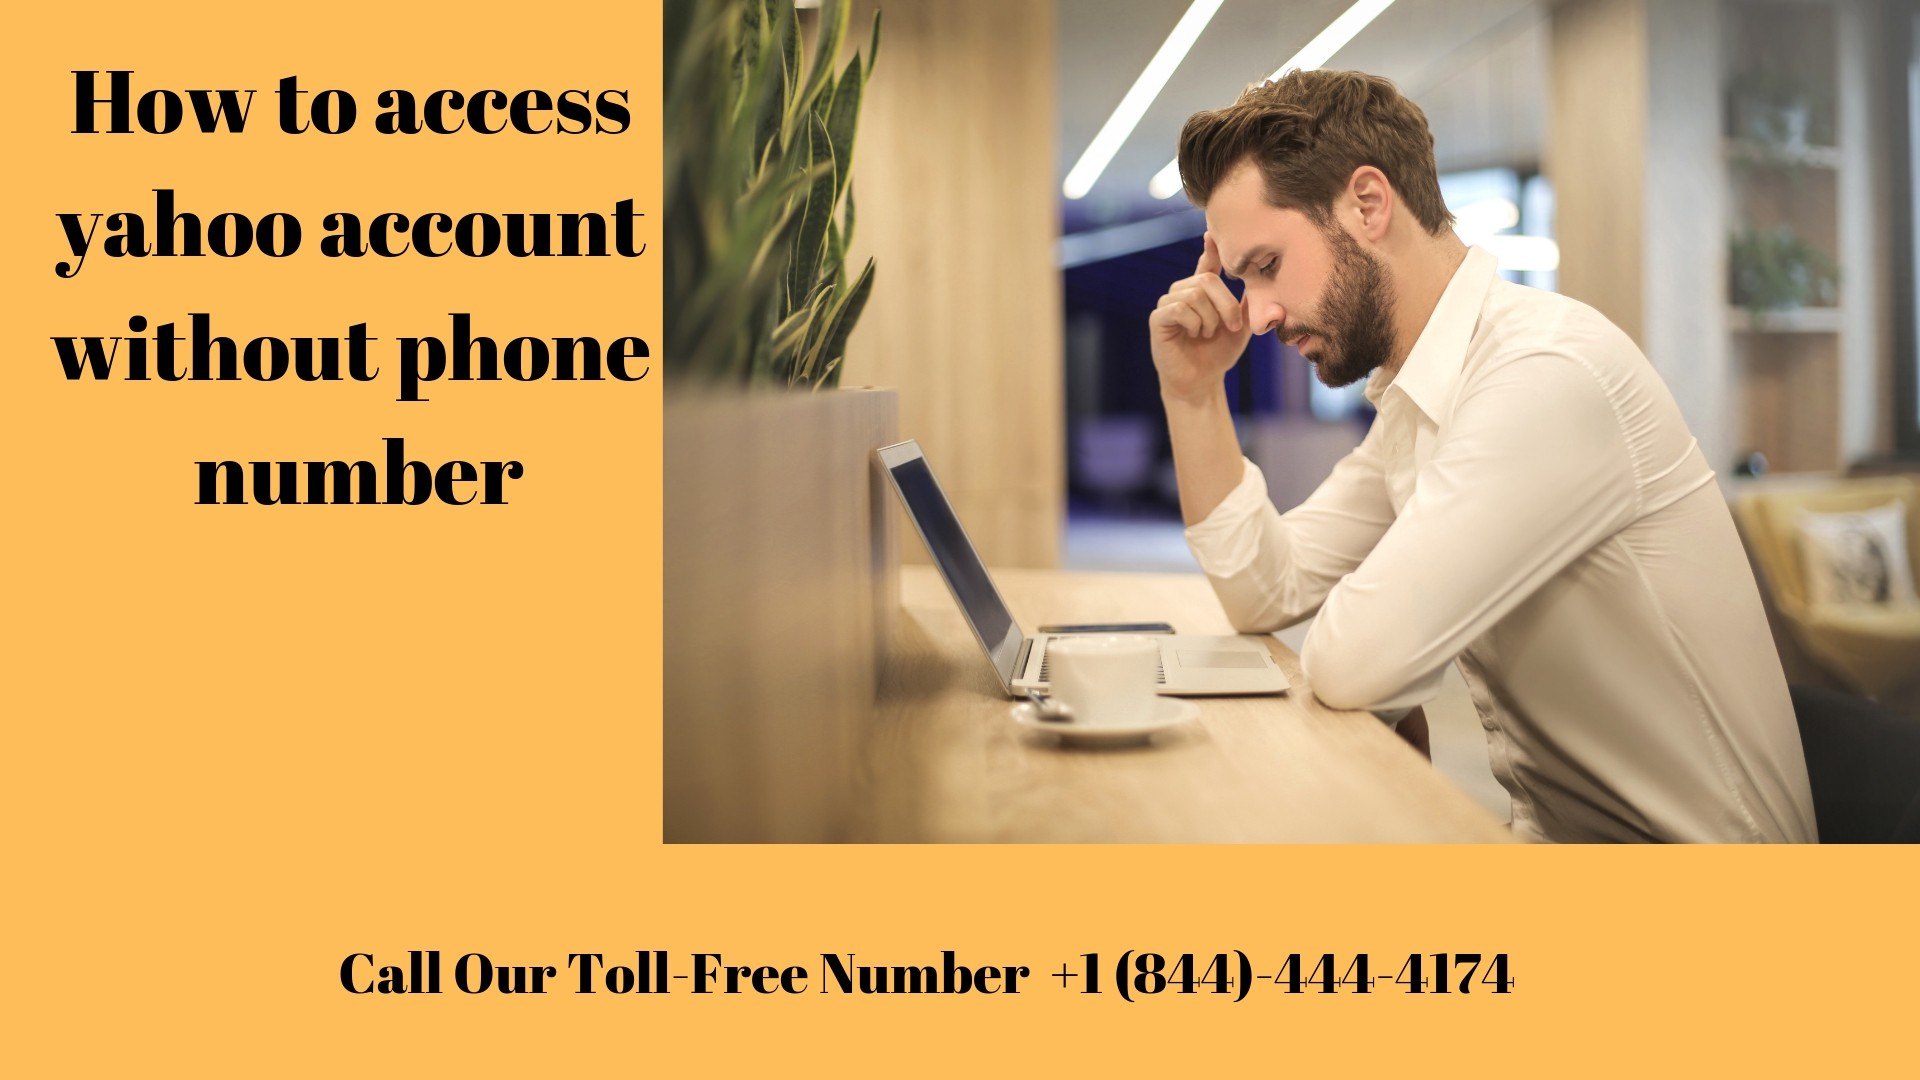 how to access yahoo account without phone number